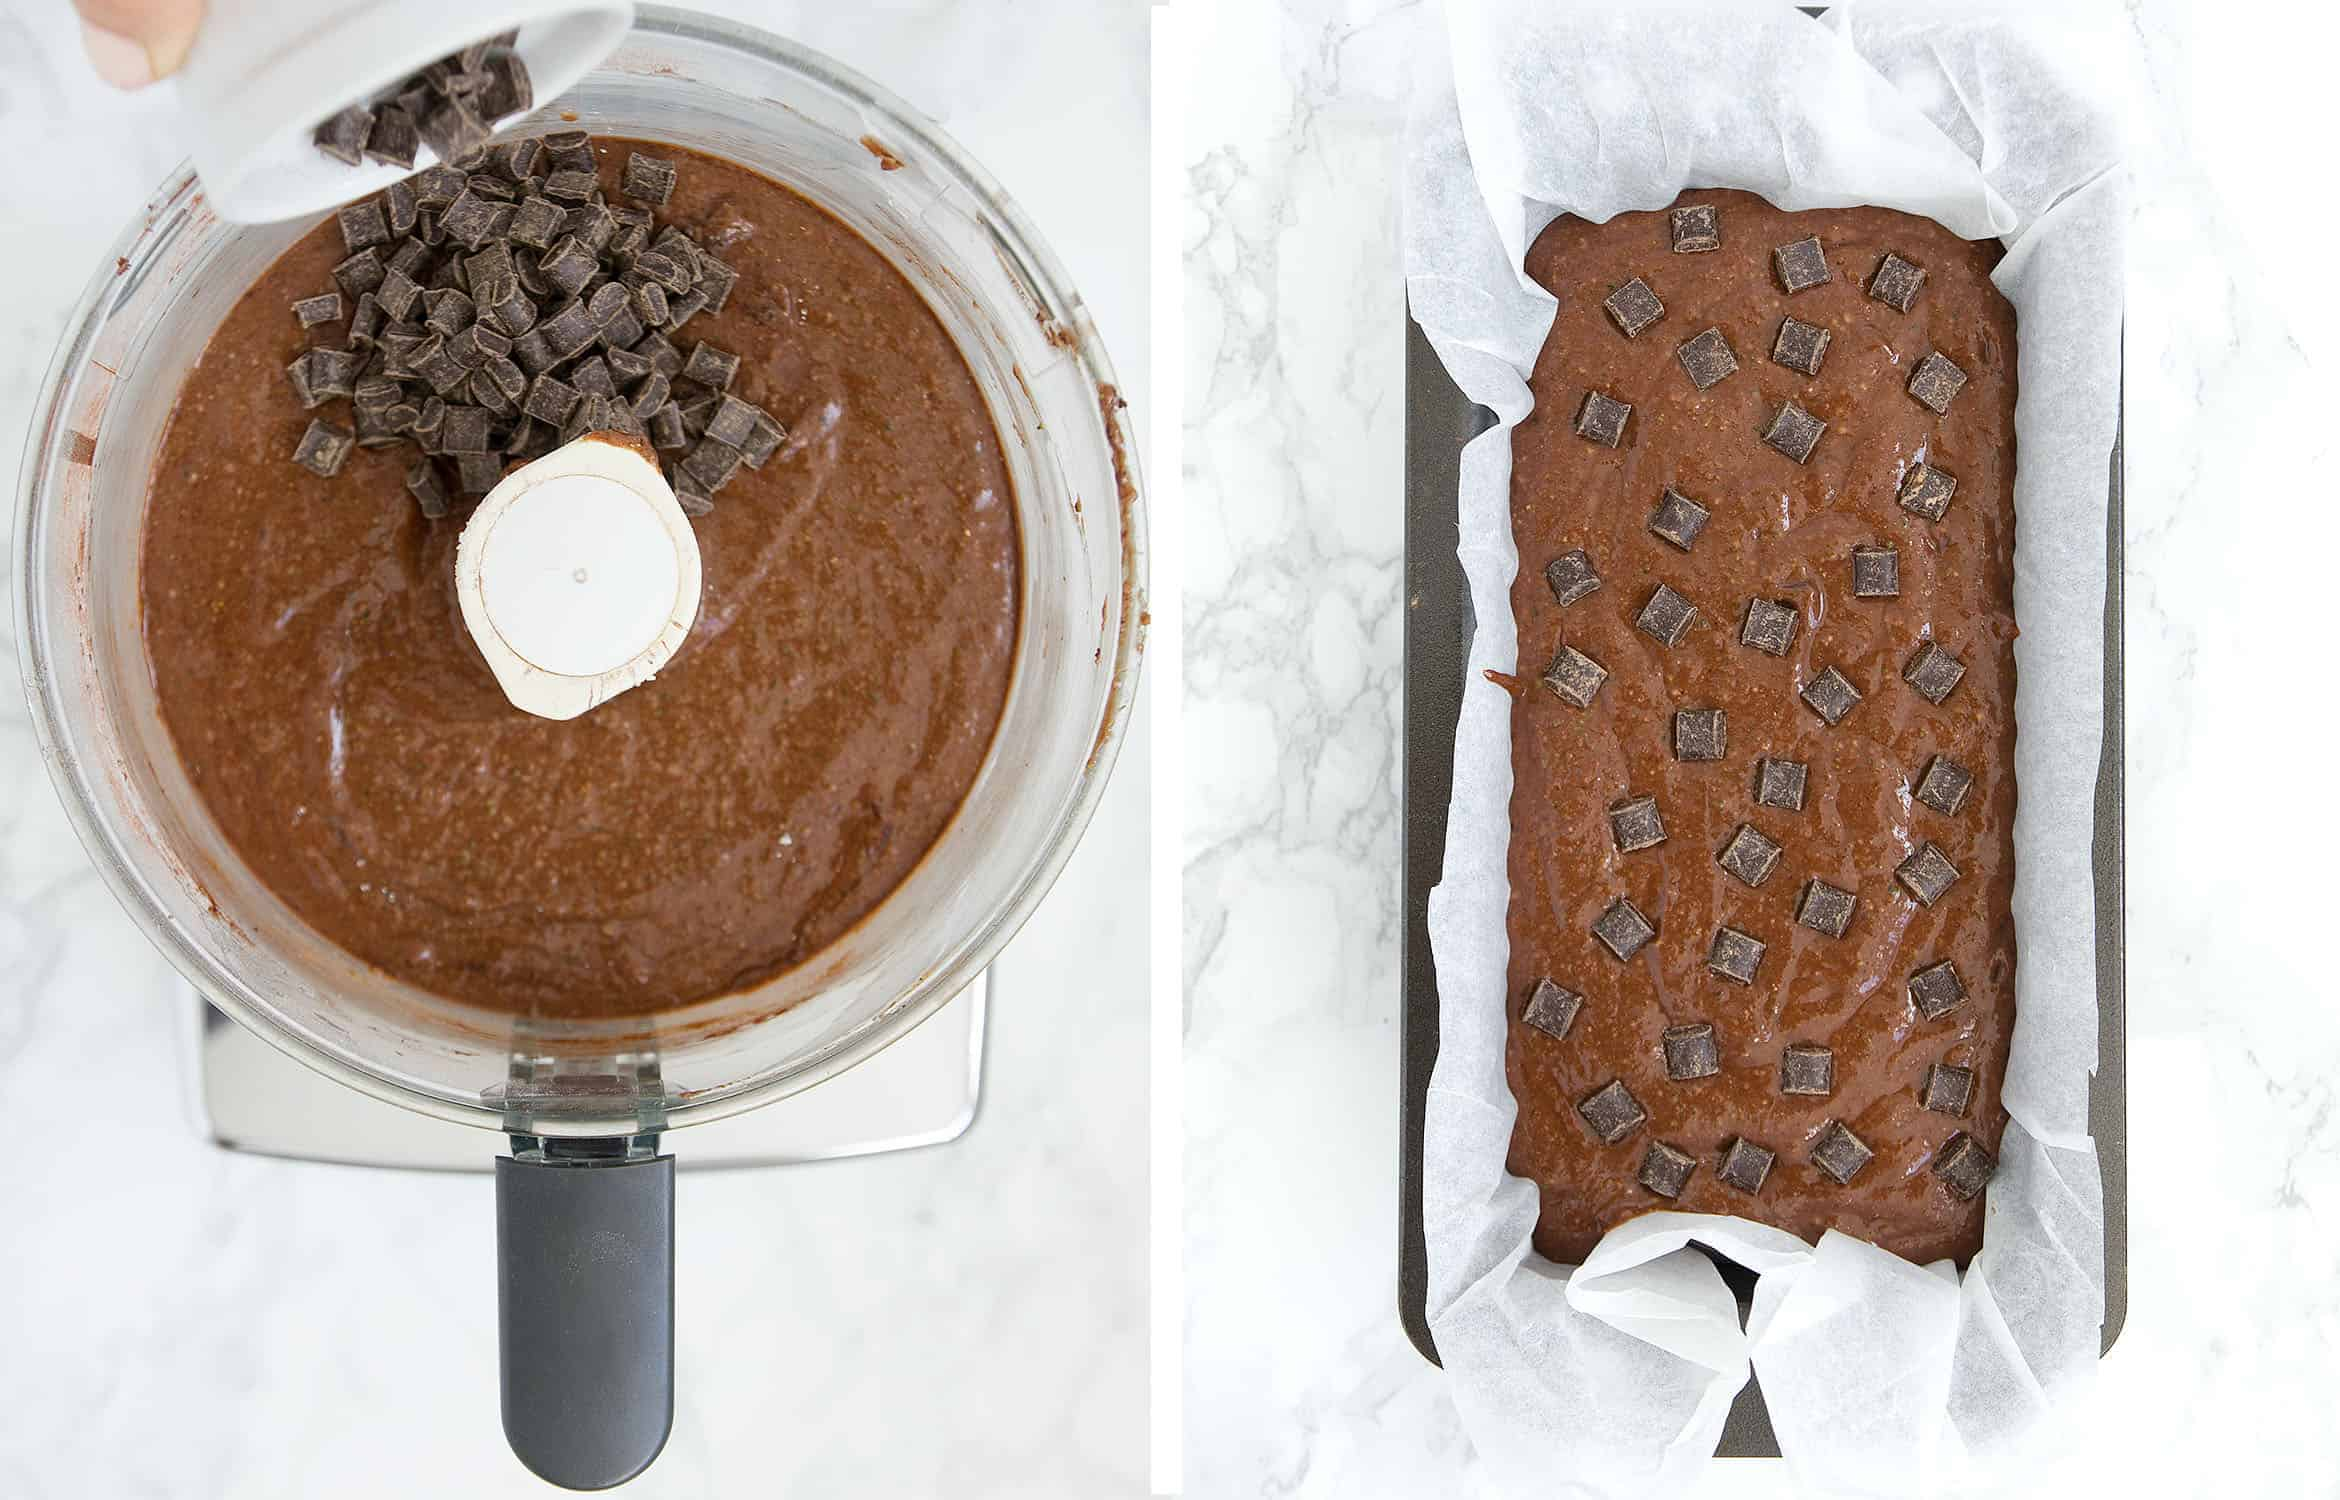 The first image shows the addition of chocolate chips white the second one shows the batter in a loaf pan.